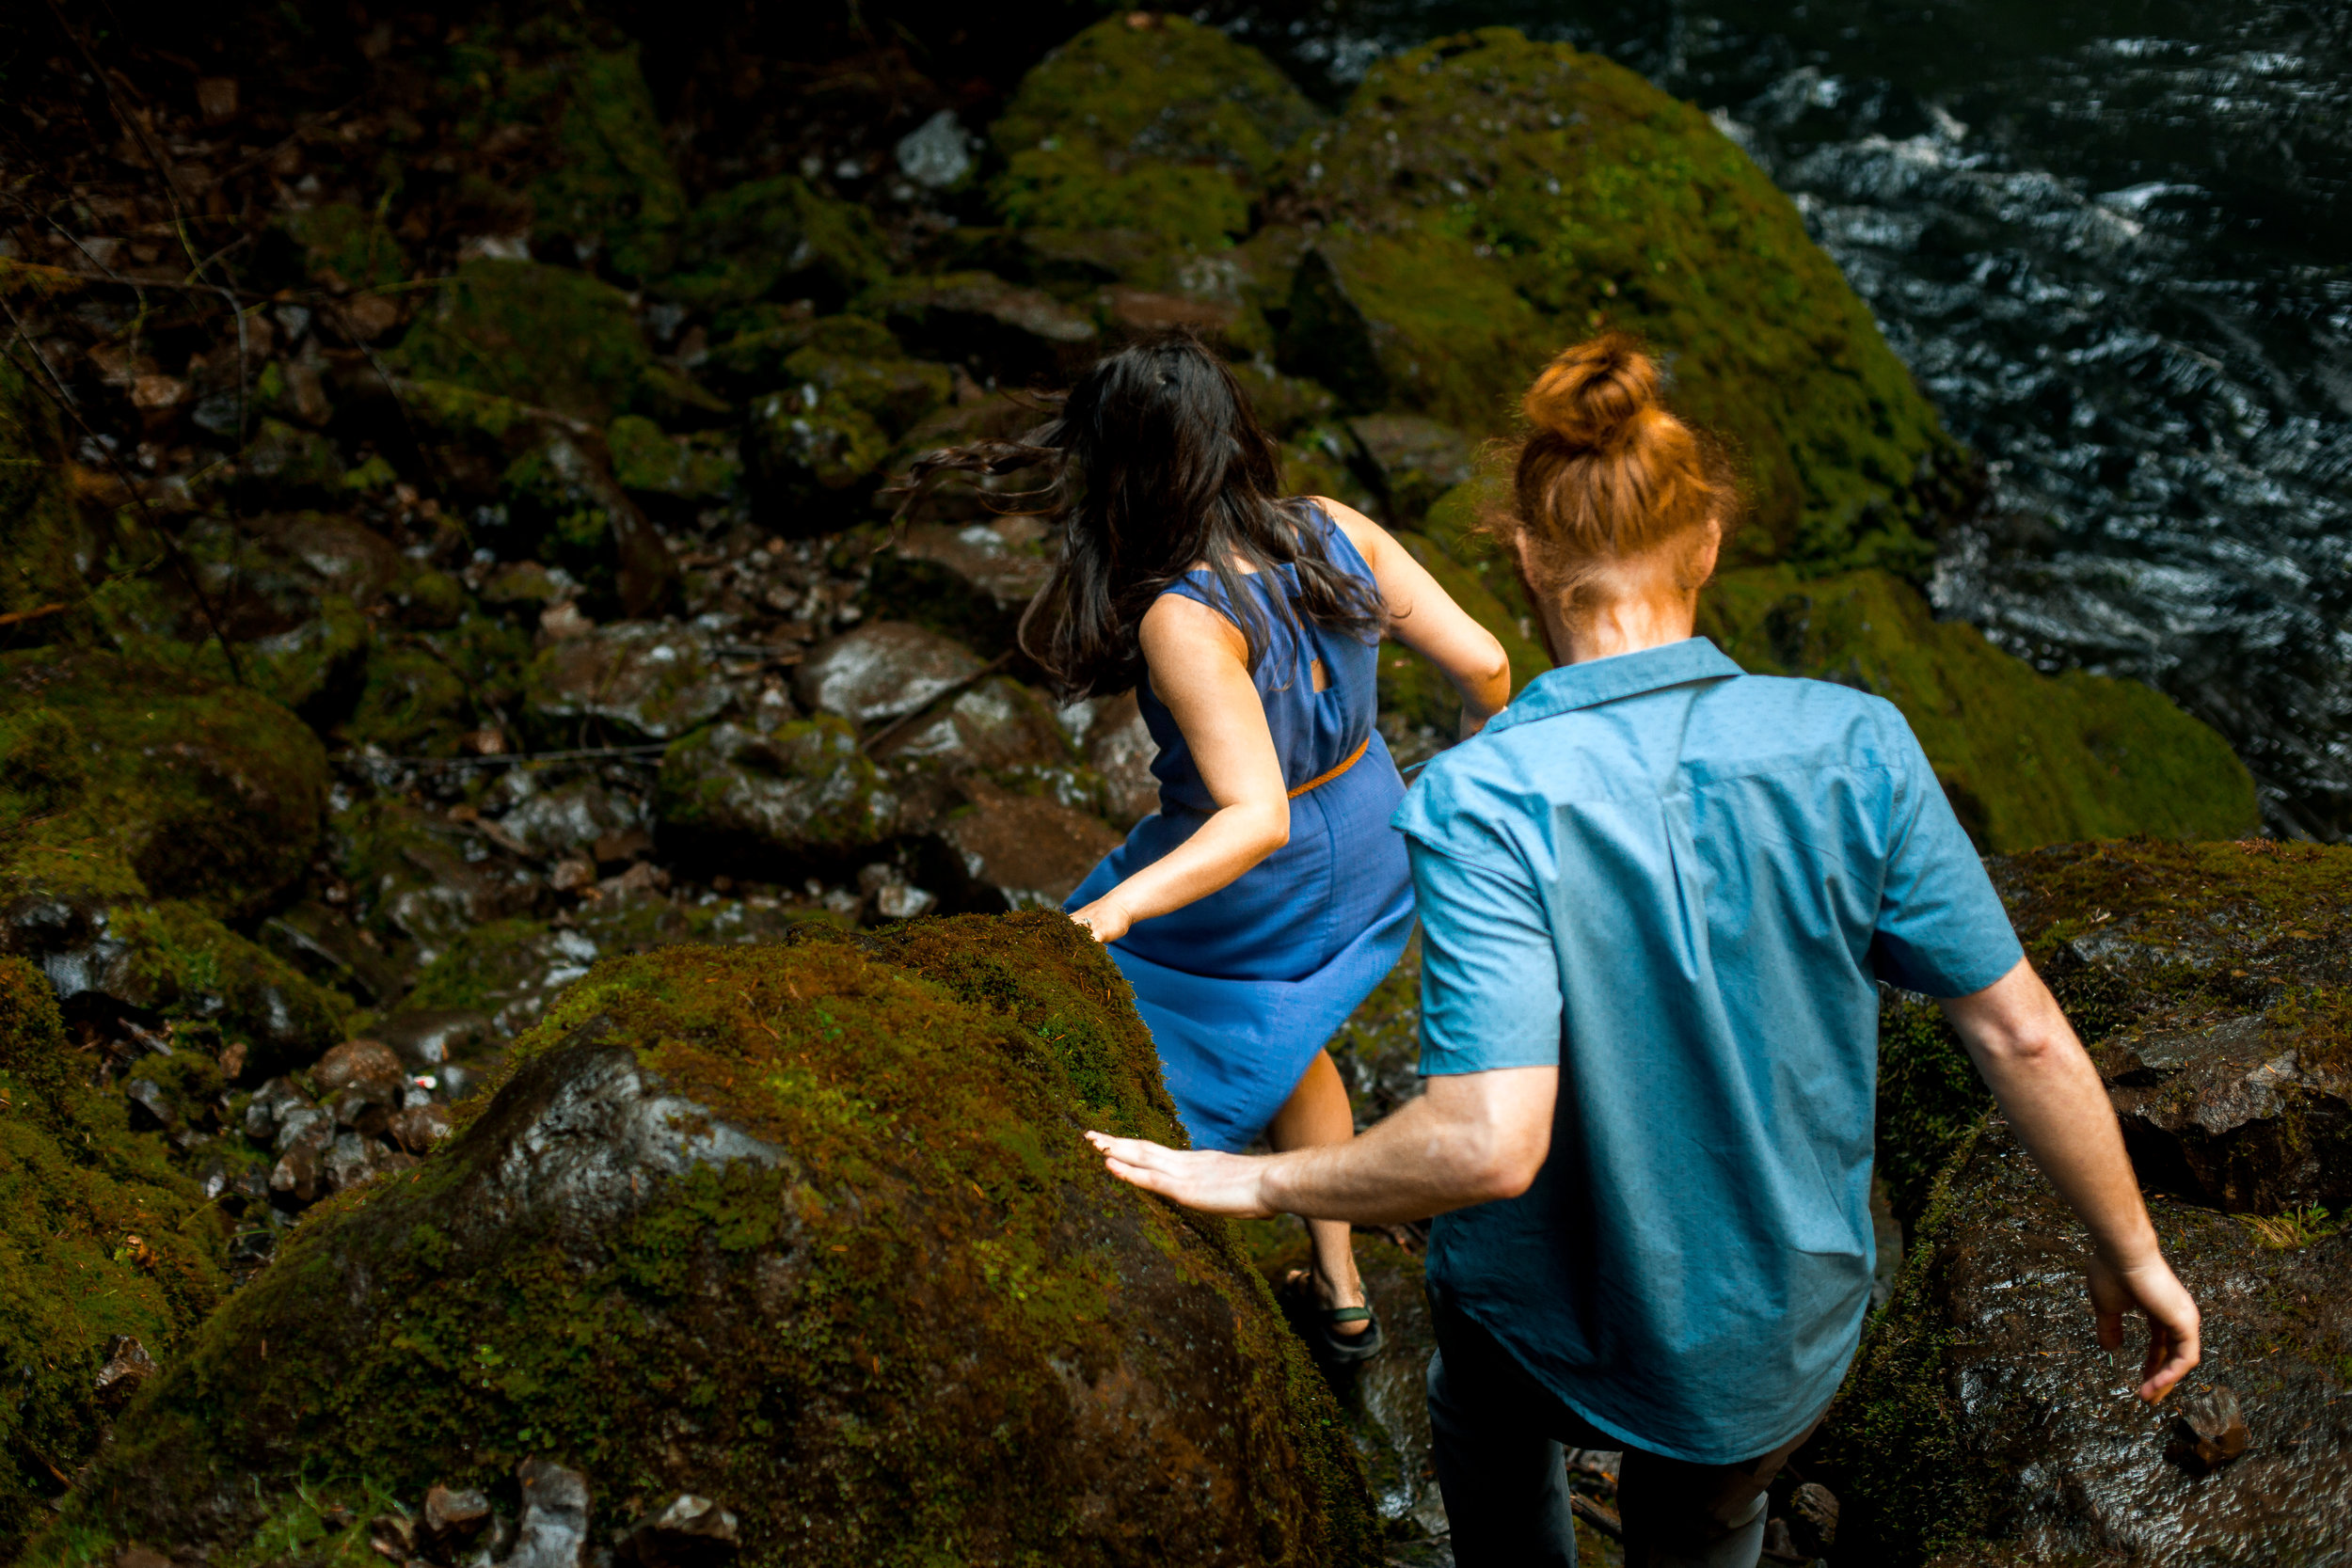 nicole-daacke-photography-wahclella-falls-waterfall-engagement-session-portland-engagement-photographer-columbia-river-gorge-oregon-elopement-photographer-10.jpg